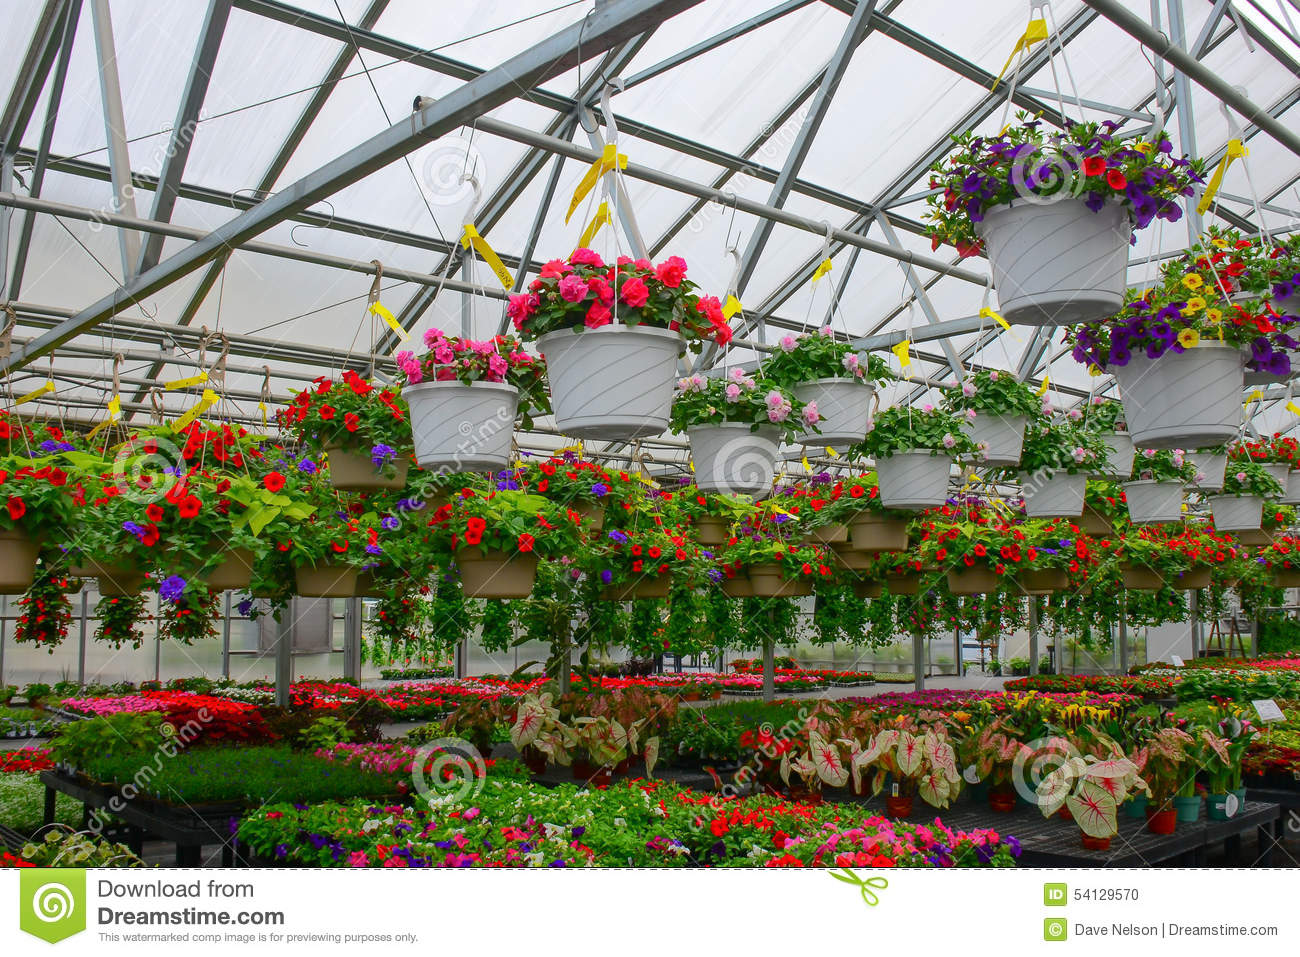 Flower Hanging Baskets Sale : Hanging baskets of flowers for sale in greenhouse stock